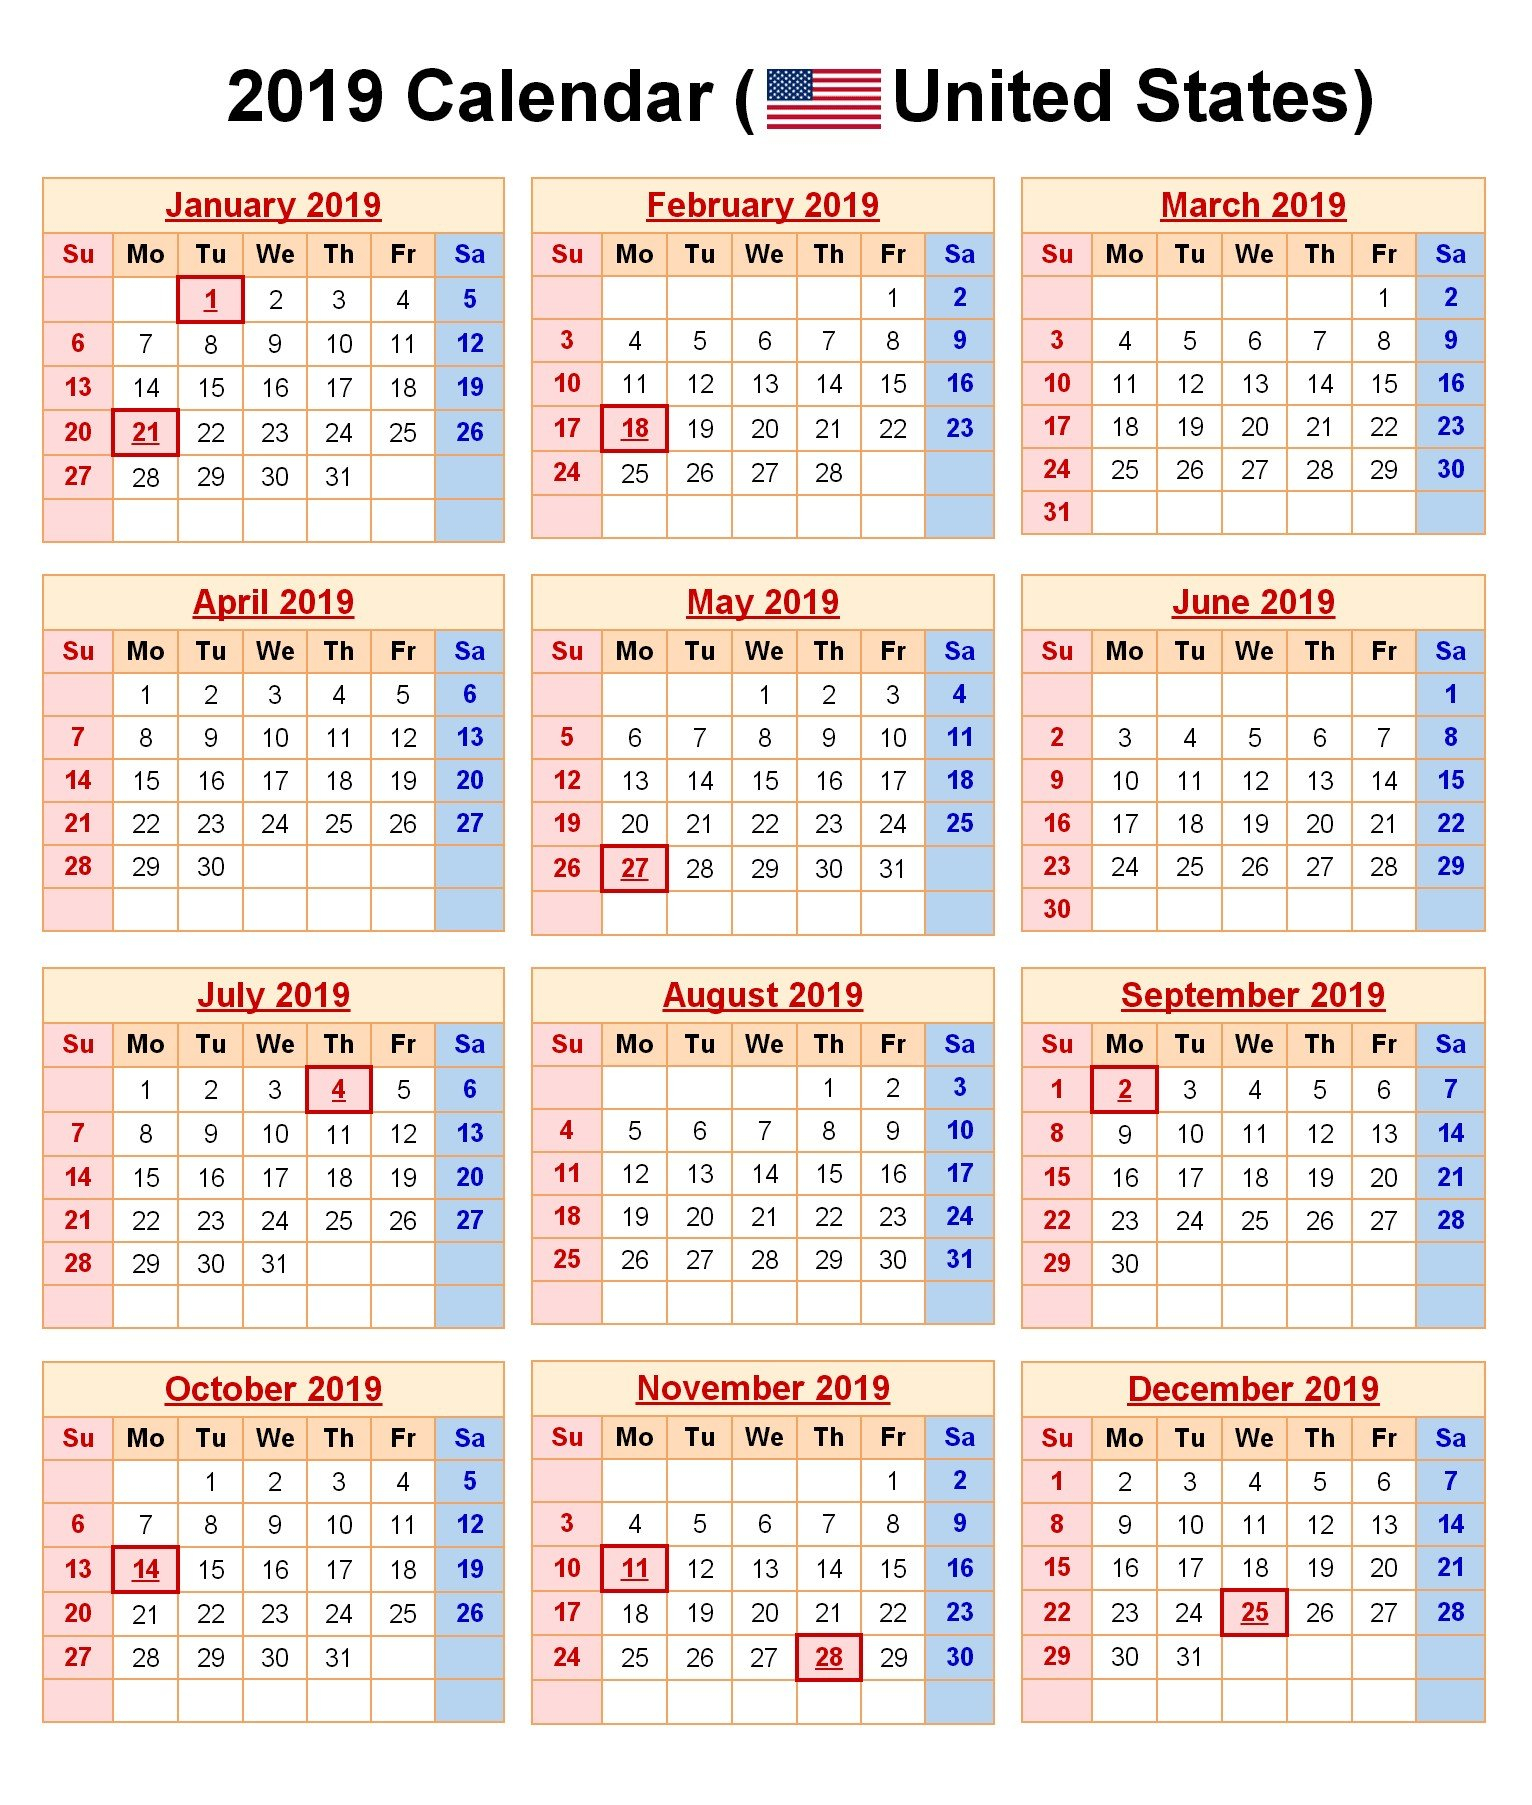 2019 Printable Calendar With Us Holidays Printable Calendar 2019 Calendar 2019 With Holidays Usa Printable